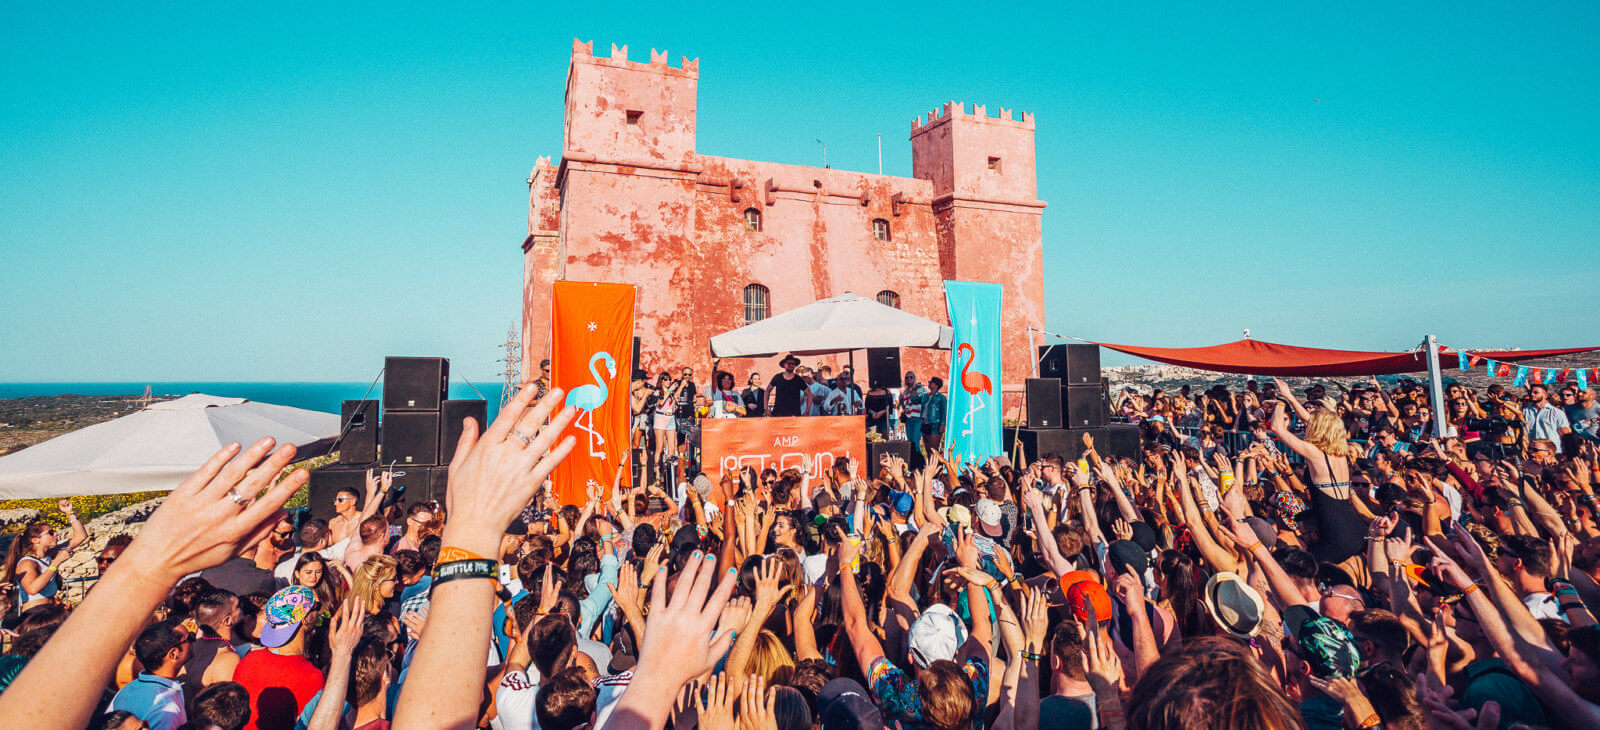 Lost and Found Festival with the Red Tower as a backdrop